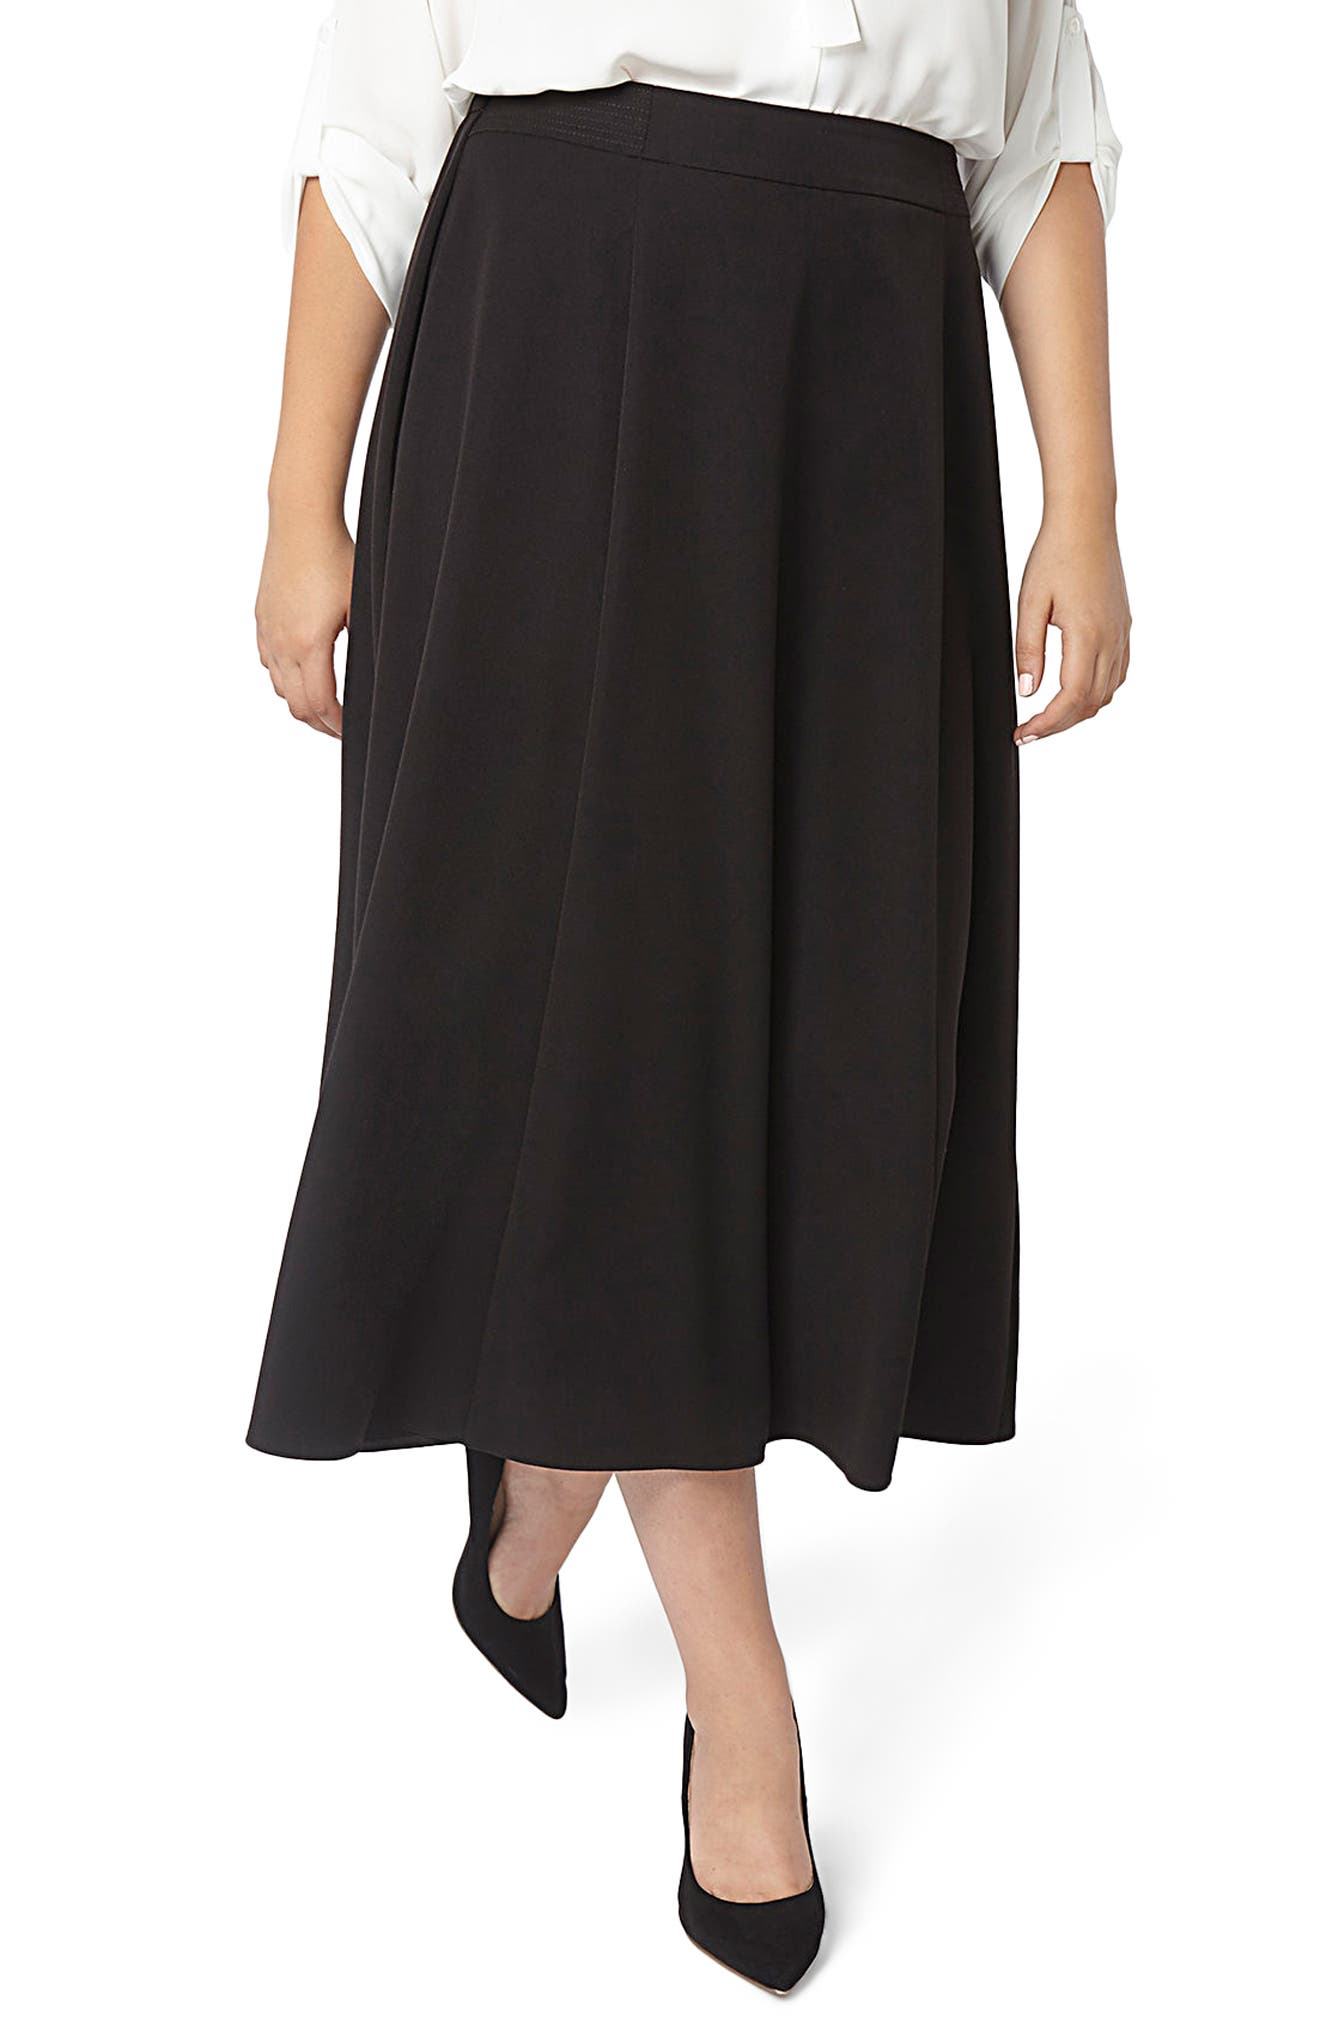 Picasso 36 Skirt,                         Main,                         color, Black